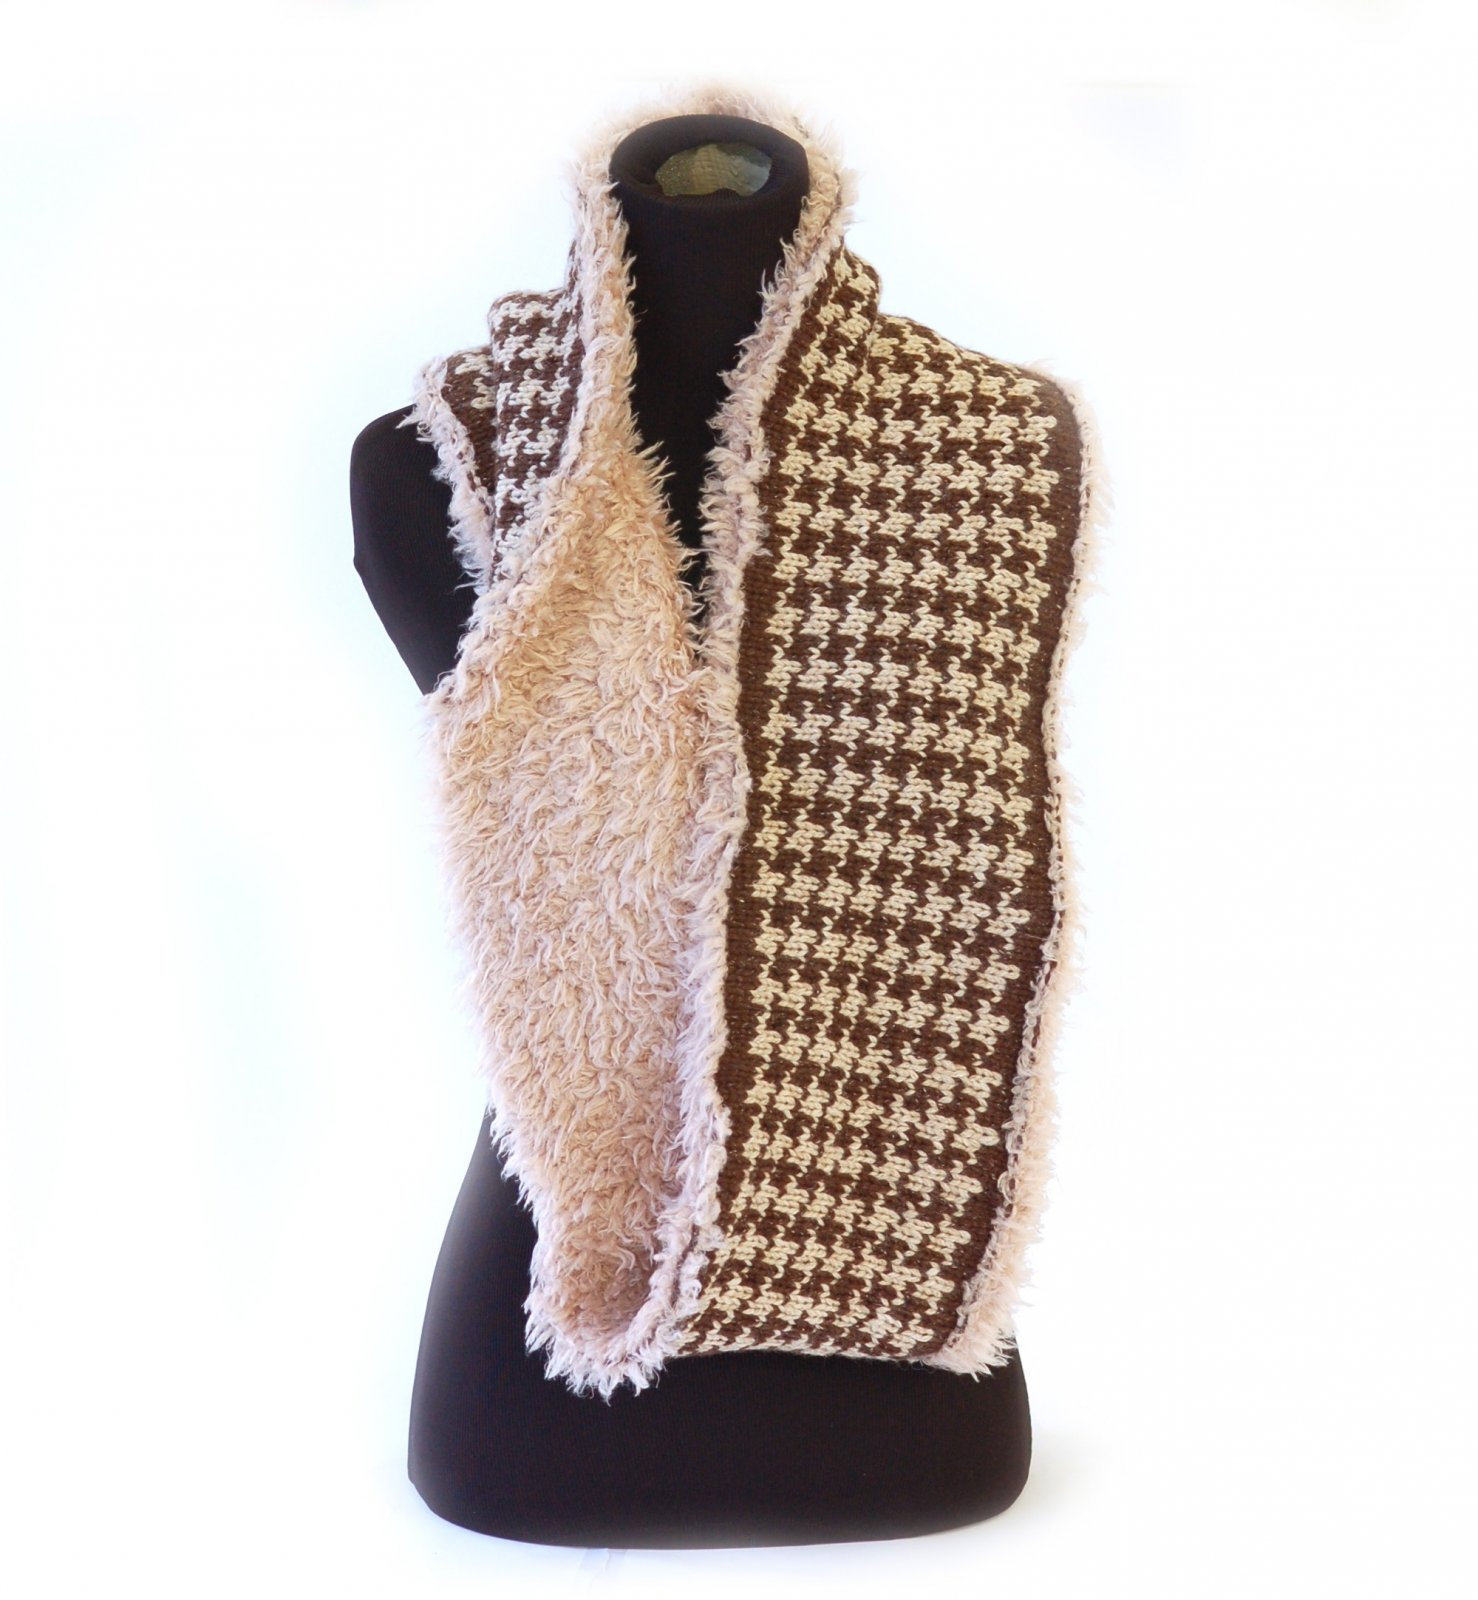 Kenzington & Caribou Chocolate Chip Cowl Kit